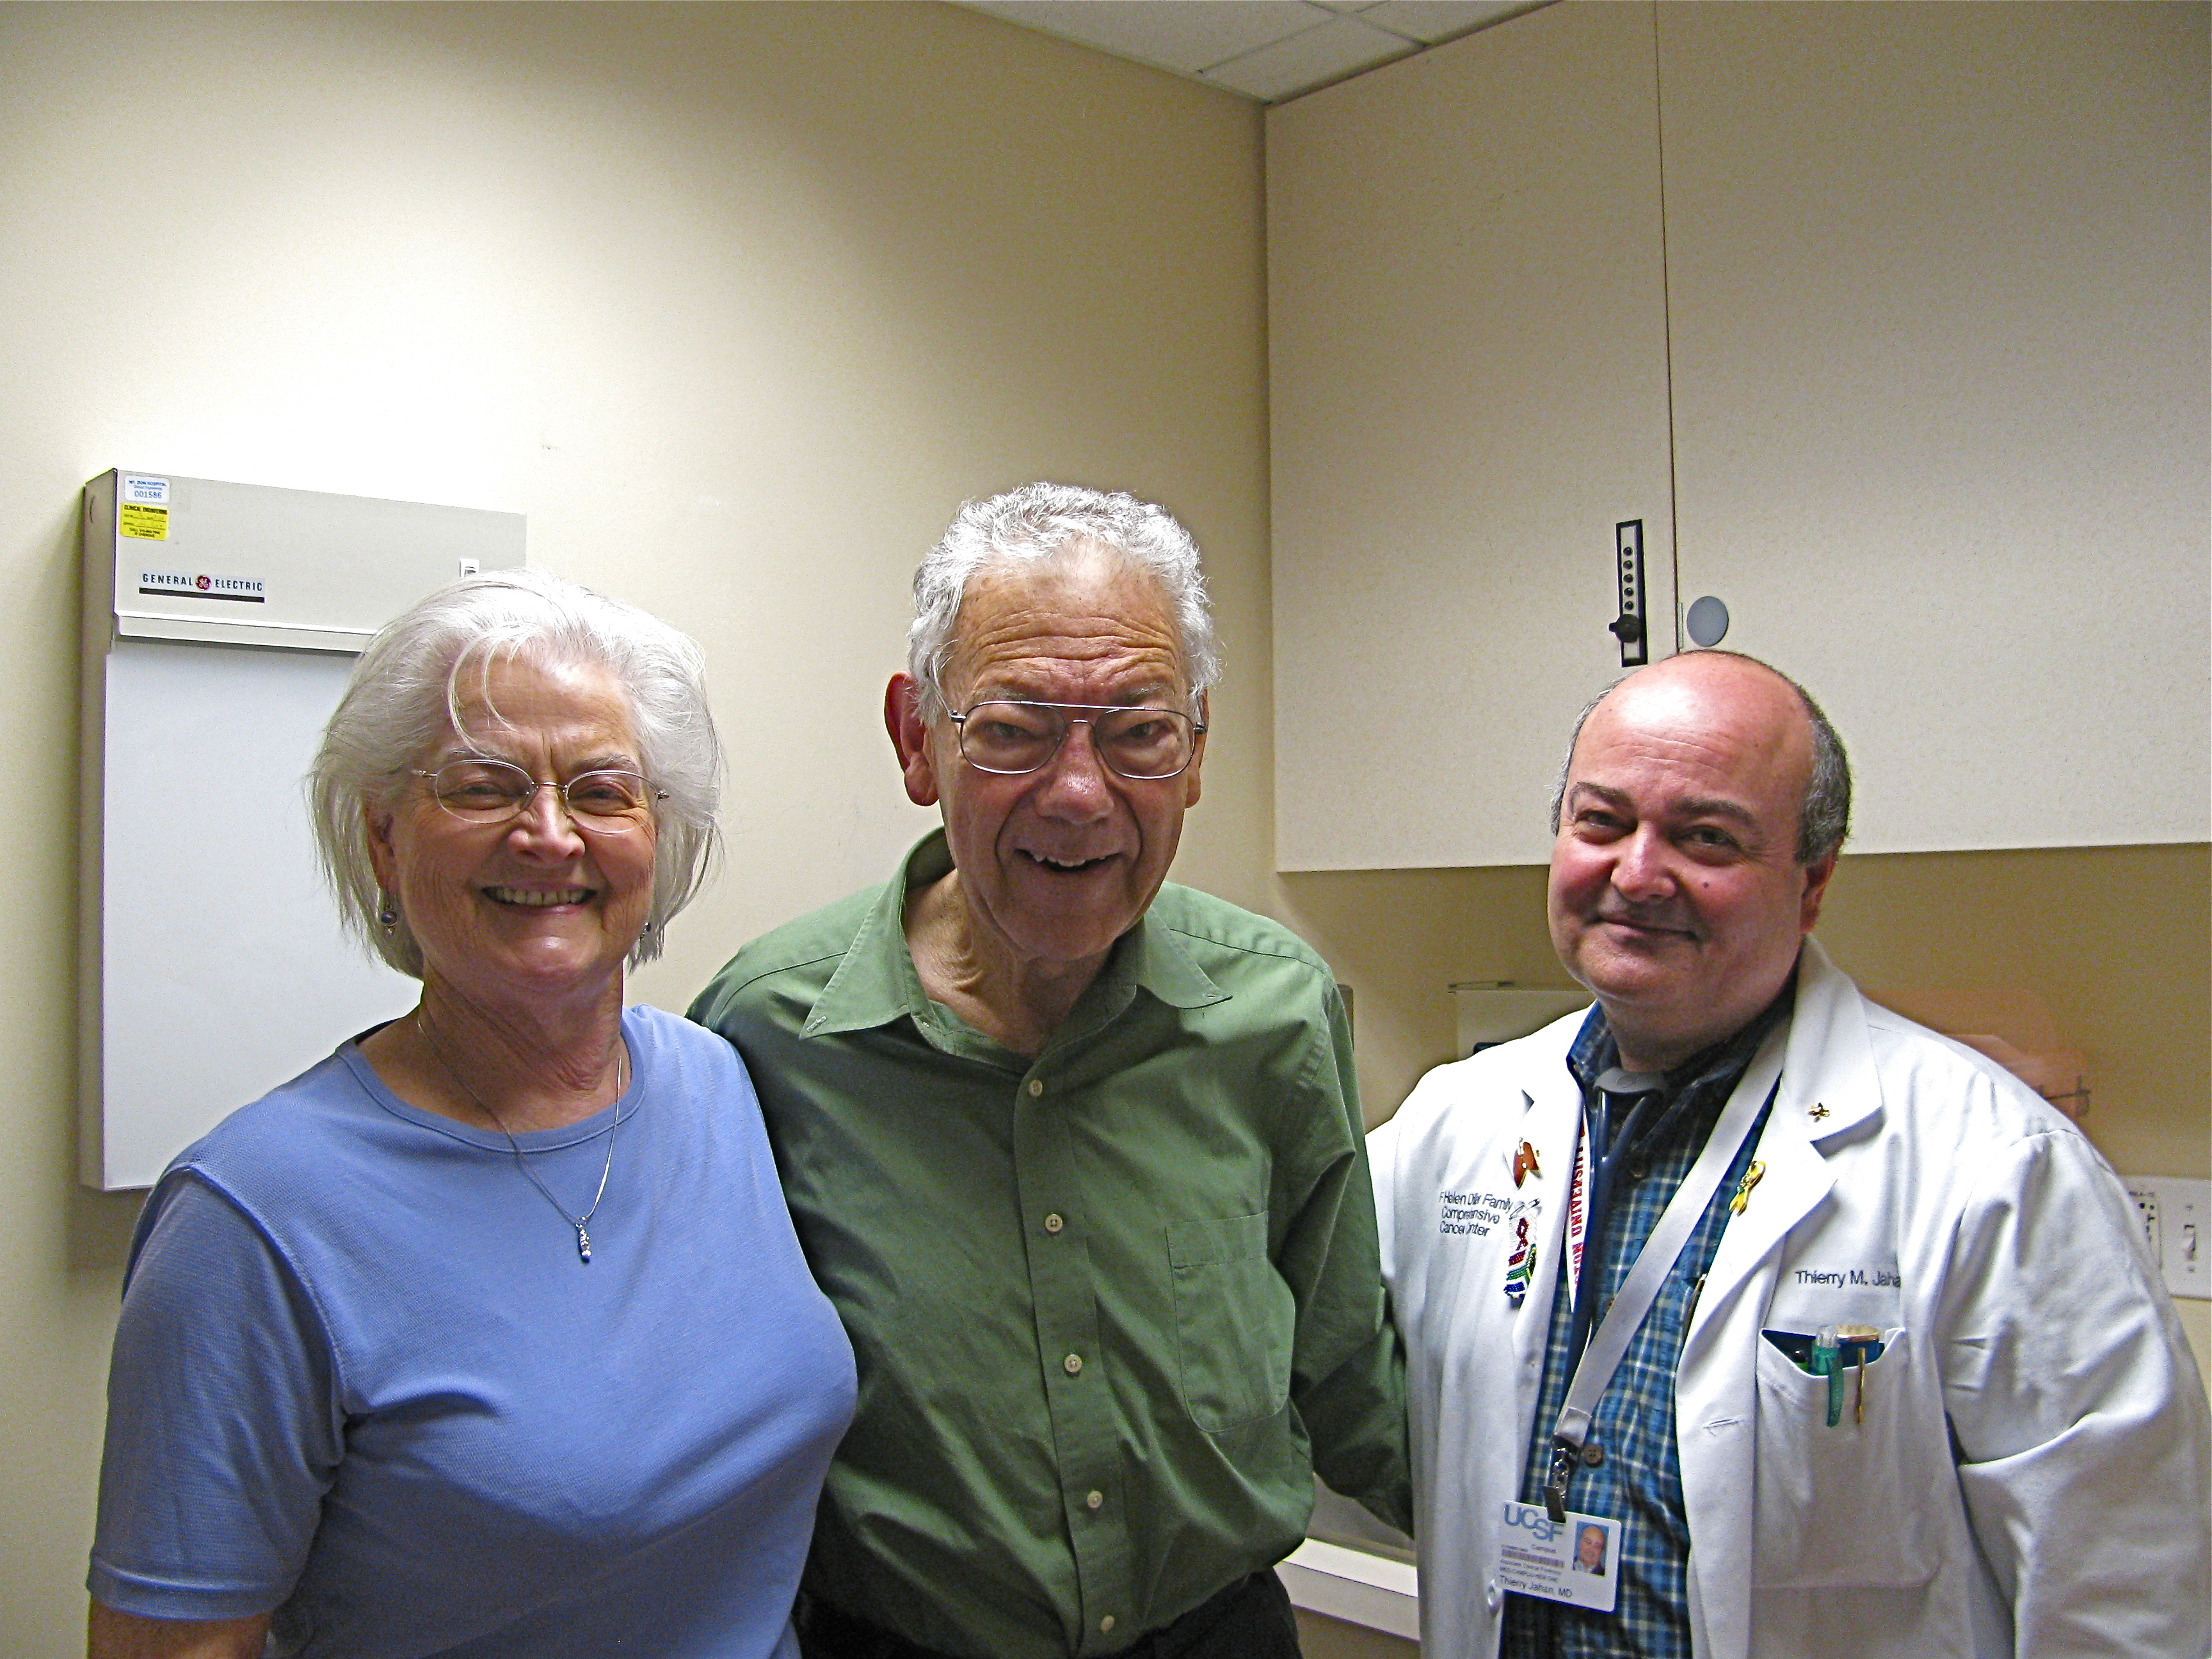 Anne and Dan are Thankful for Dr. Thierry Jahan!